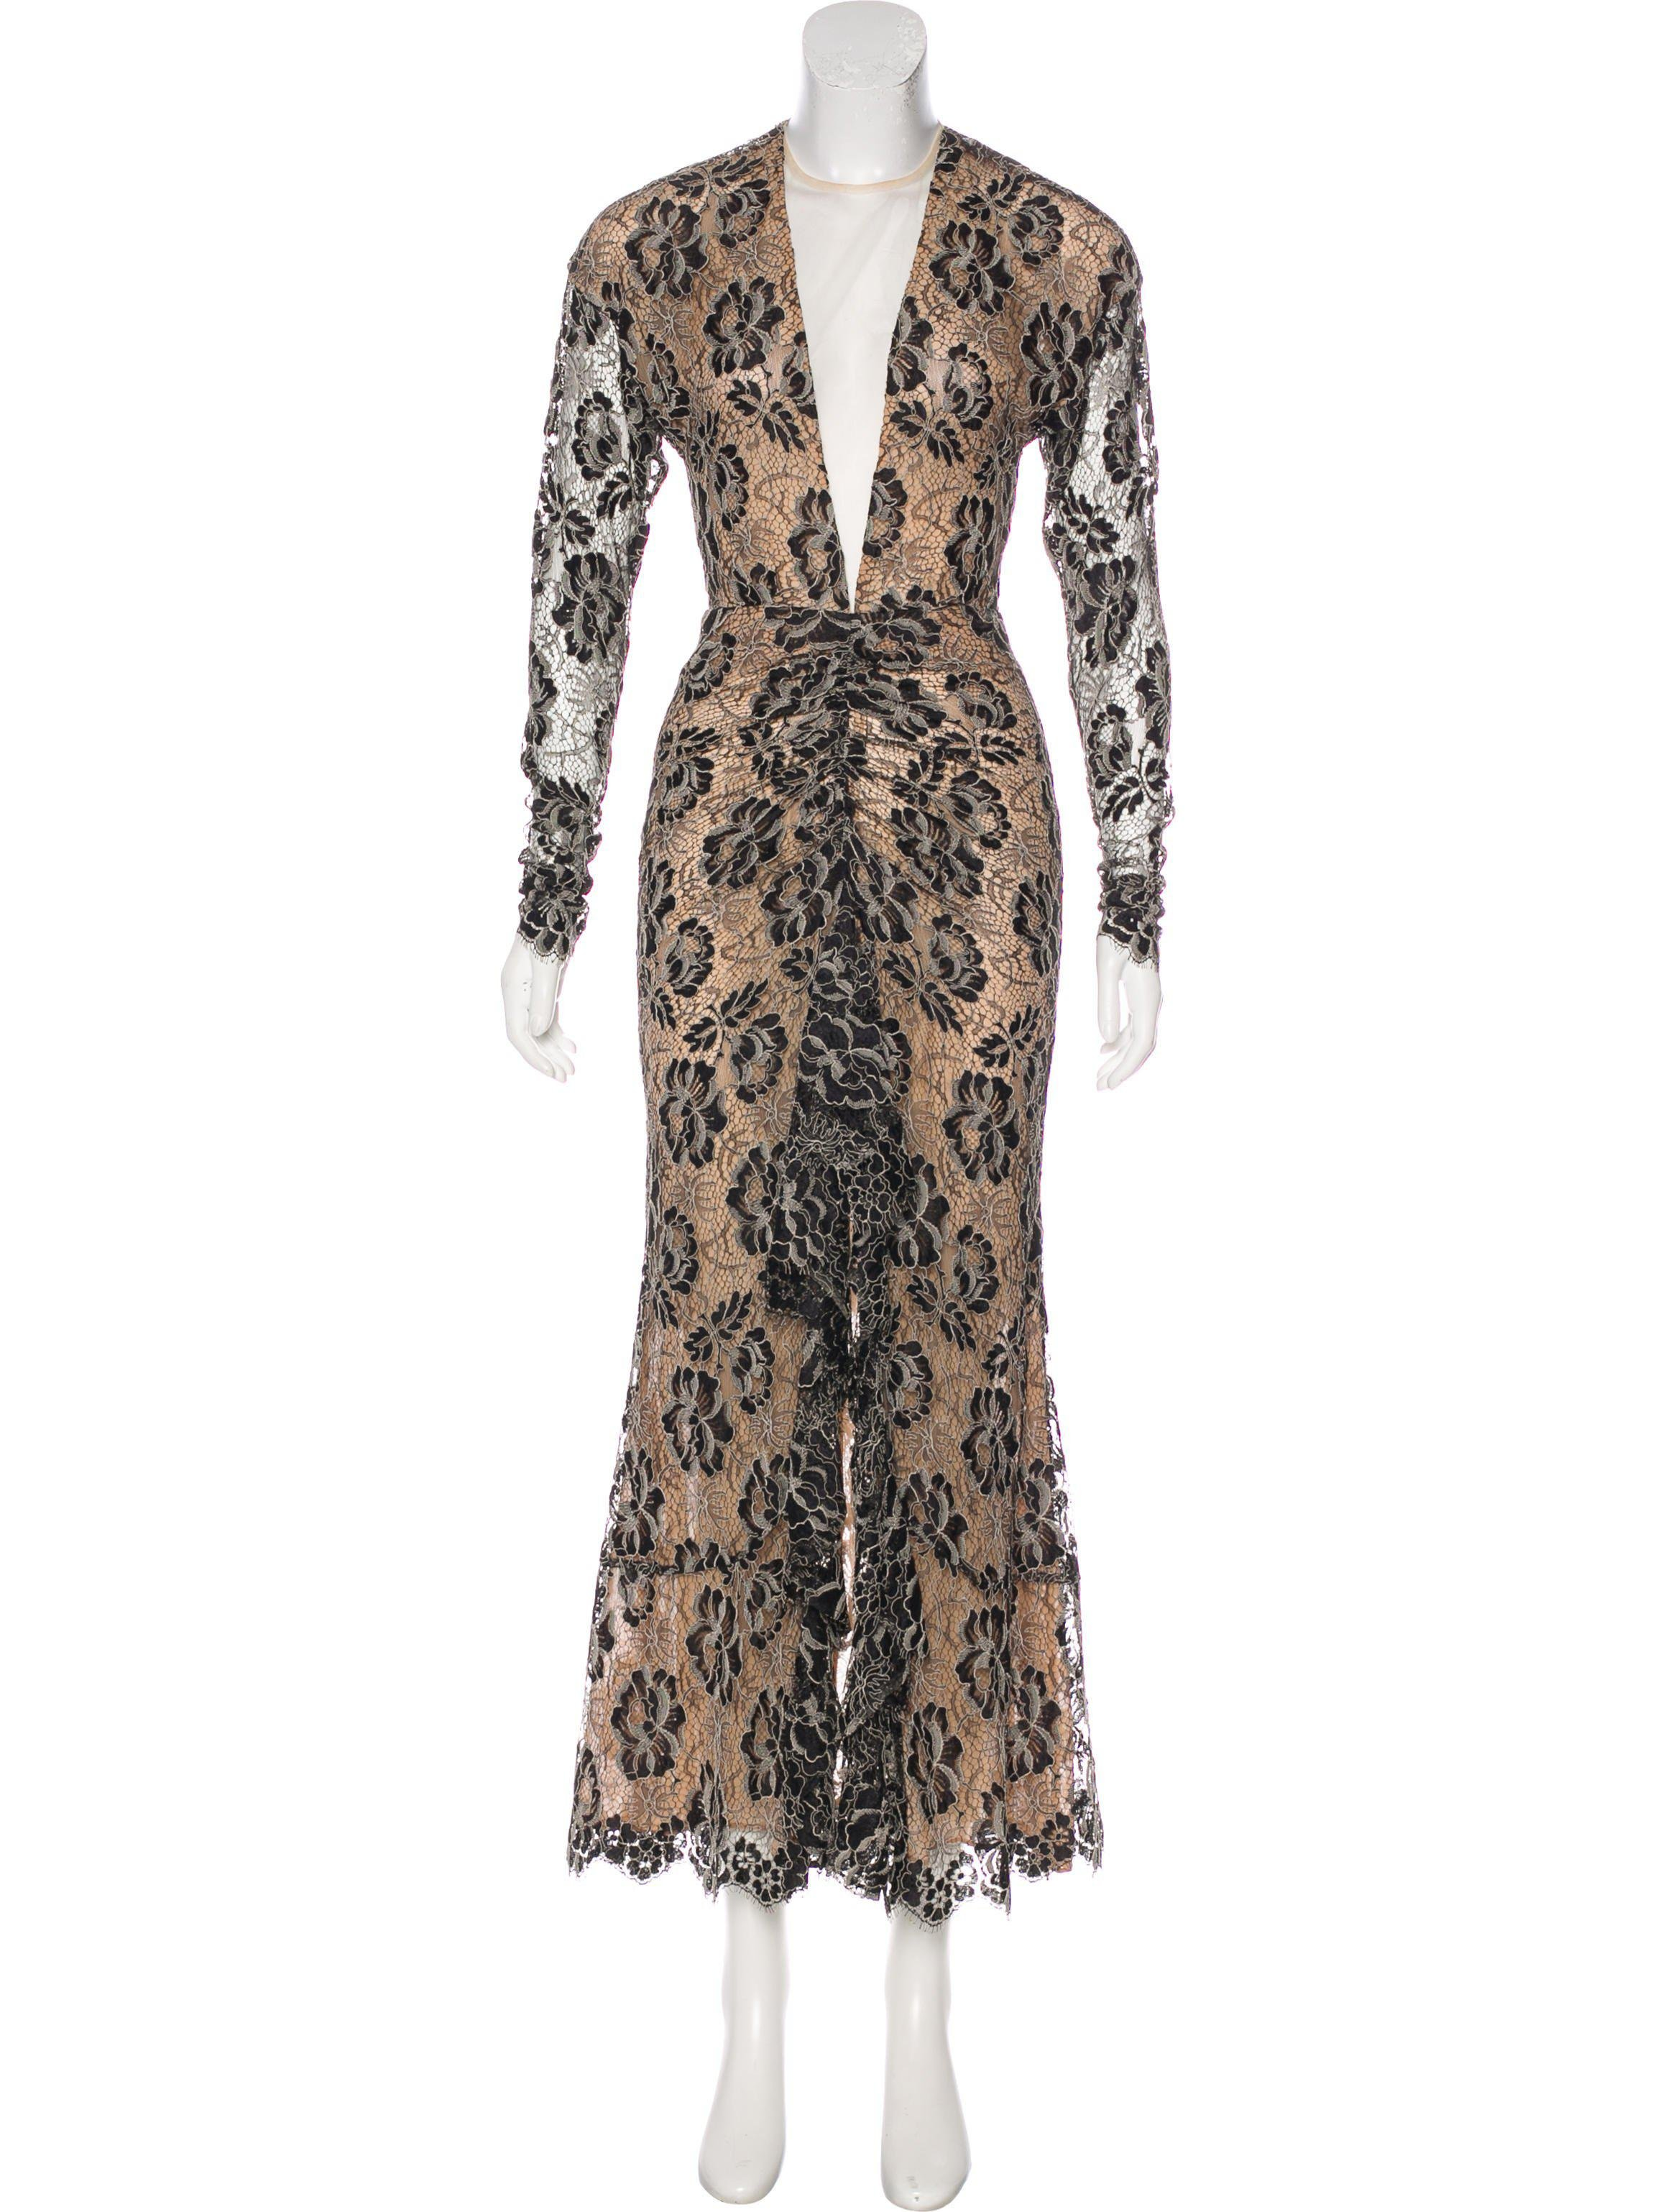 Lyst - Alessandra Rich Lace Evening Dress Tan in Natural